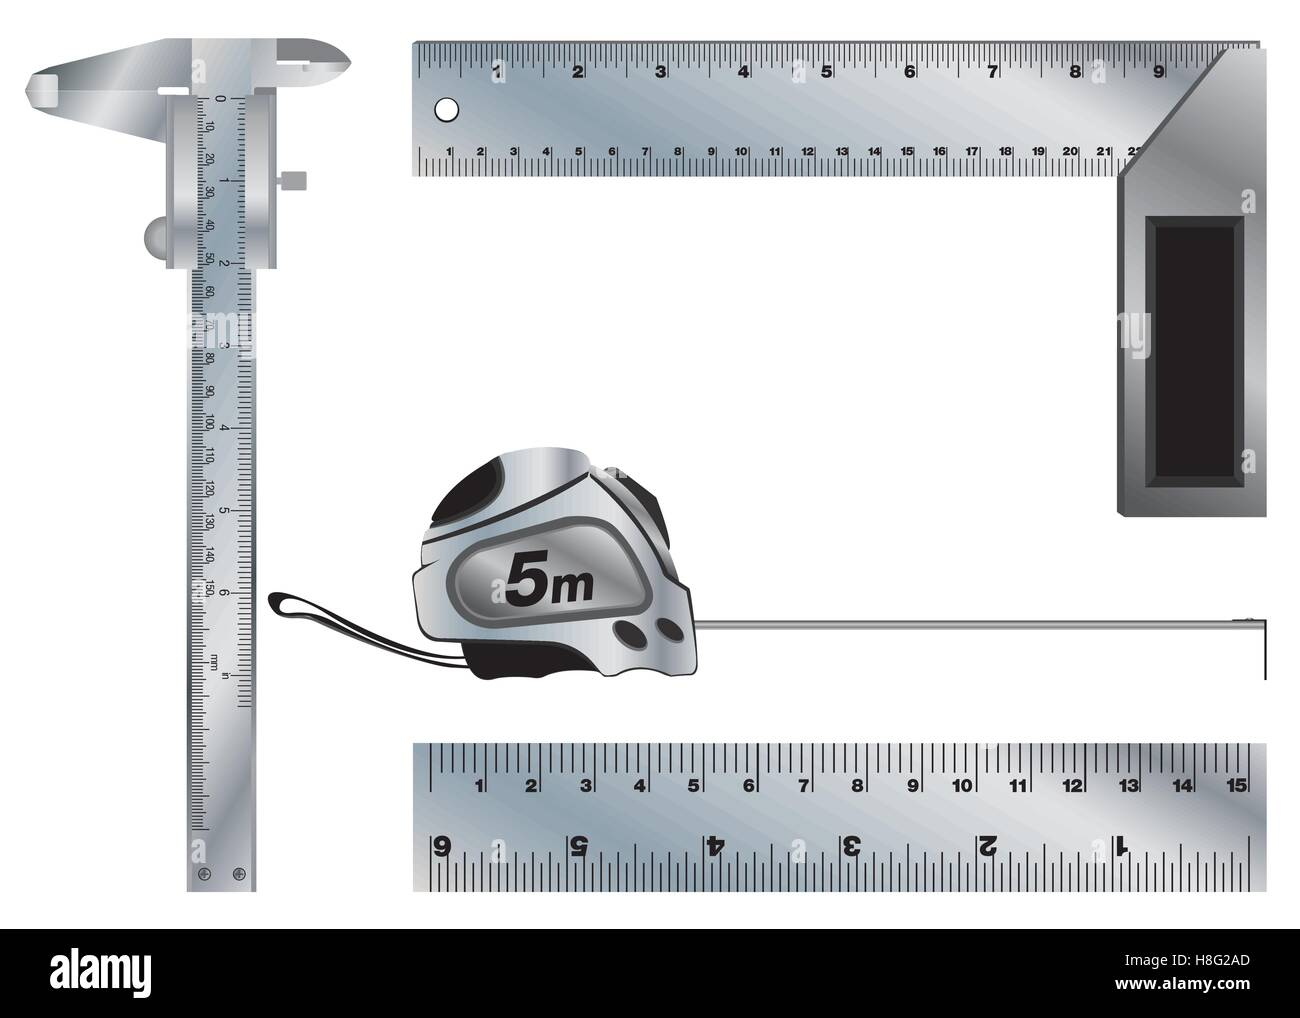 hight resolution of angle vernier caliper ruler tape measure tool isolated